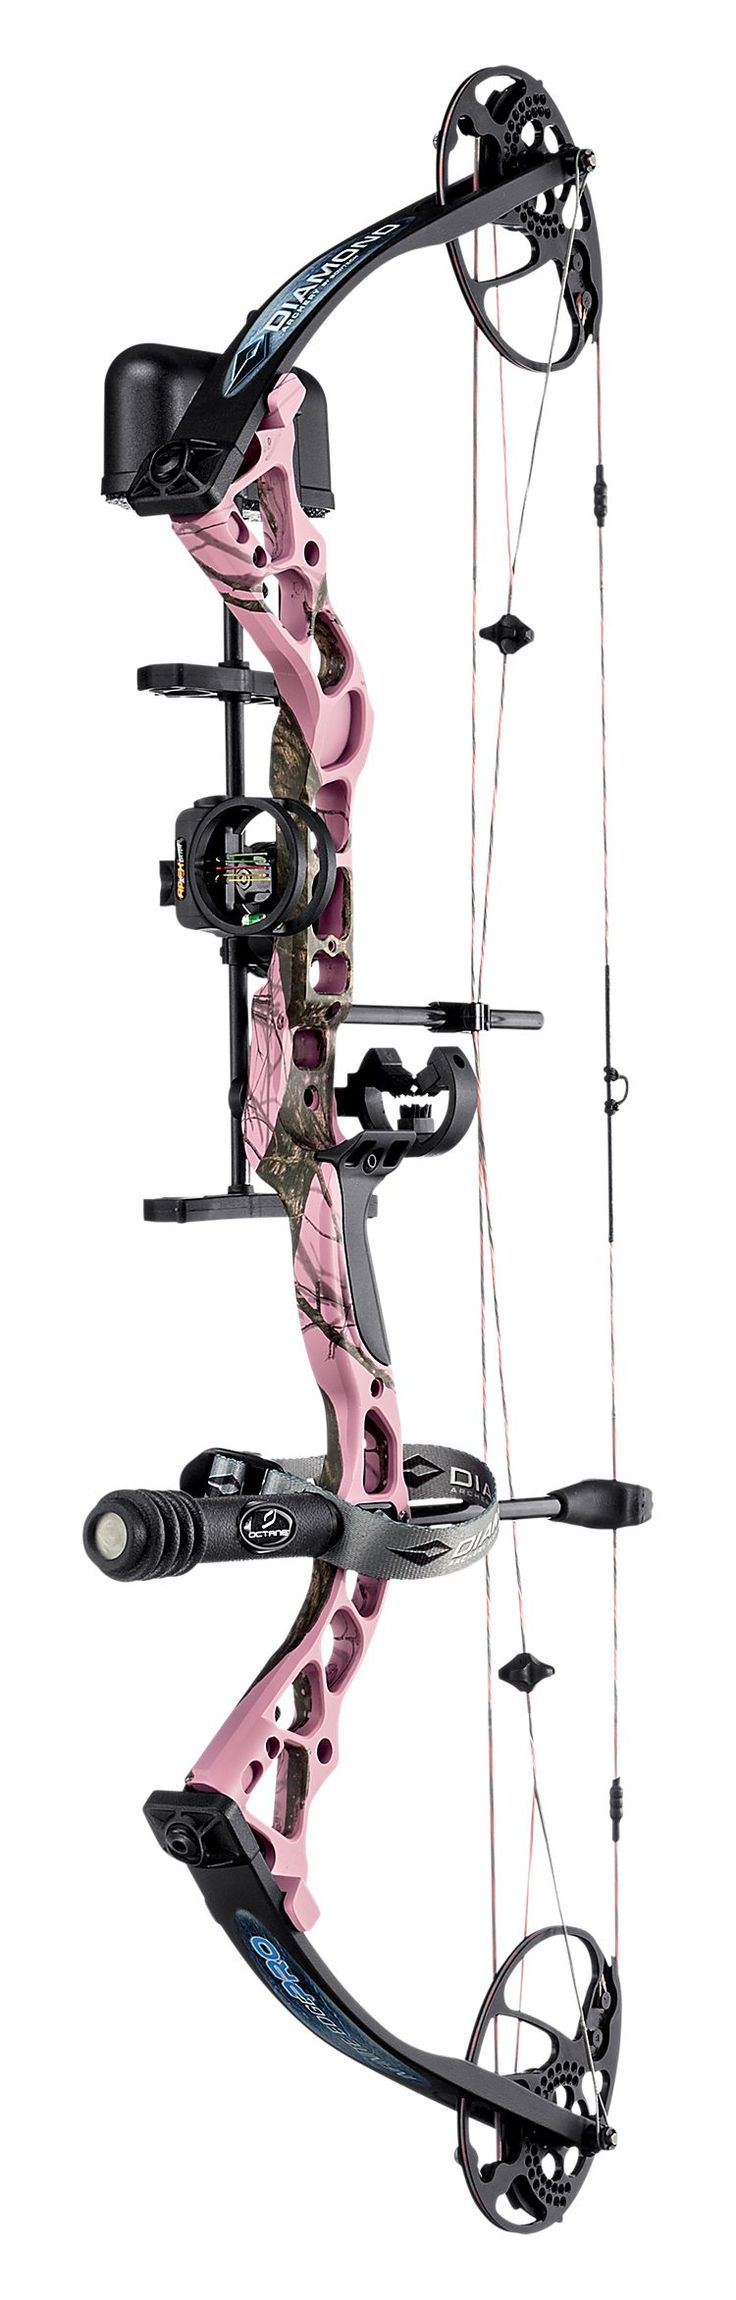 Diamond Infinite Edge Pro Compound Bow Package | Bass Pro Shops<<<----it's official! This bow will be mine in 14 days! Woo!